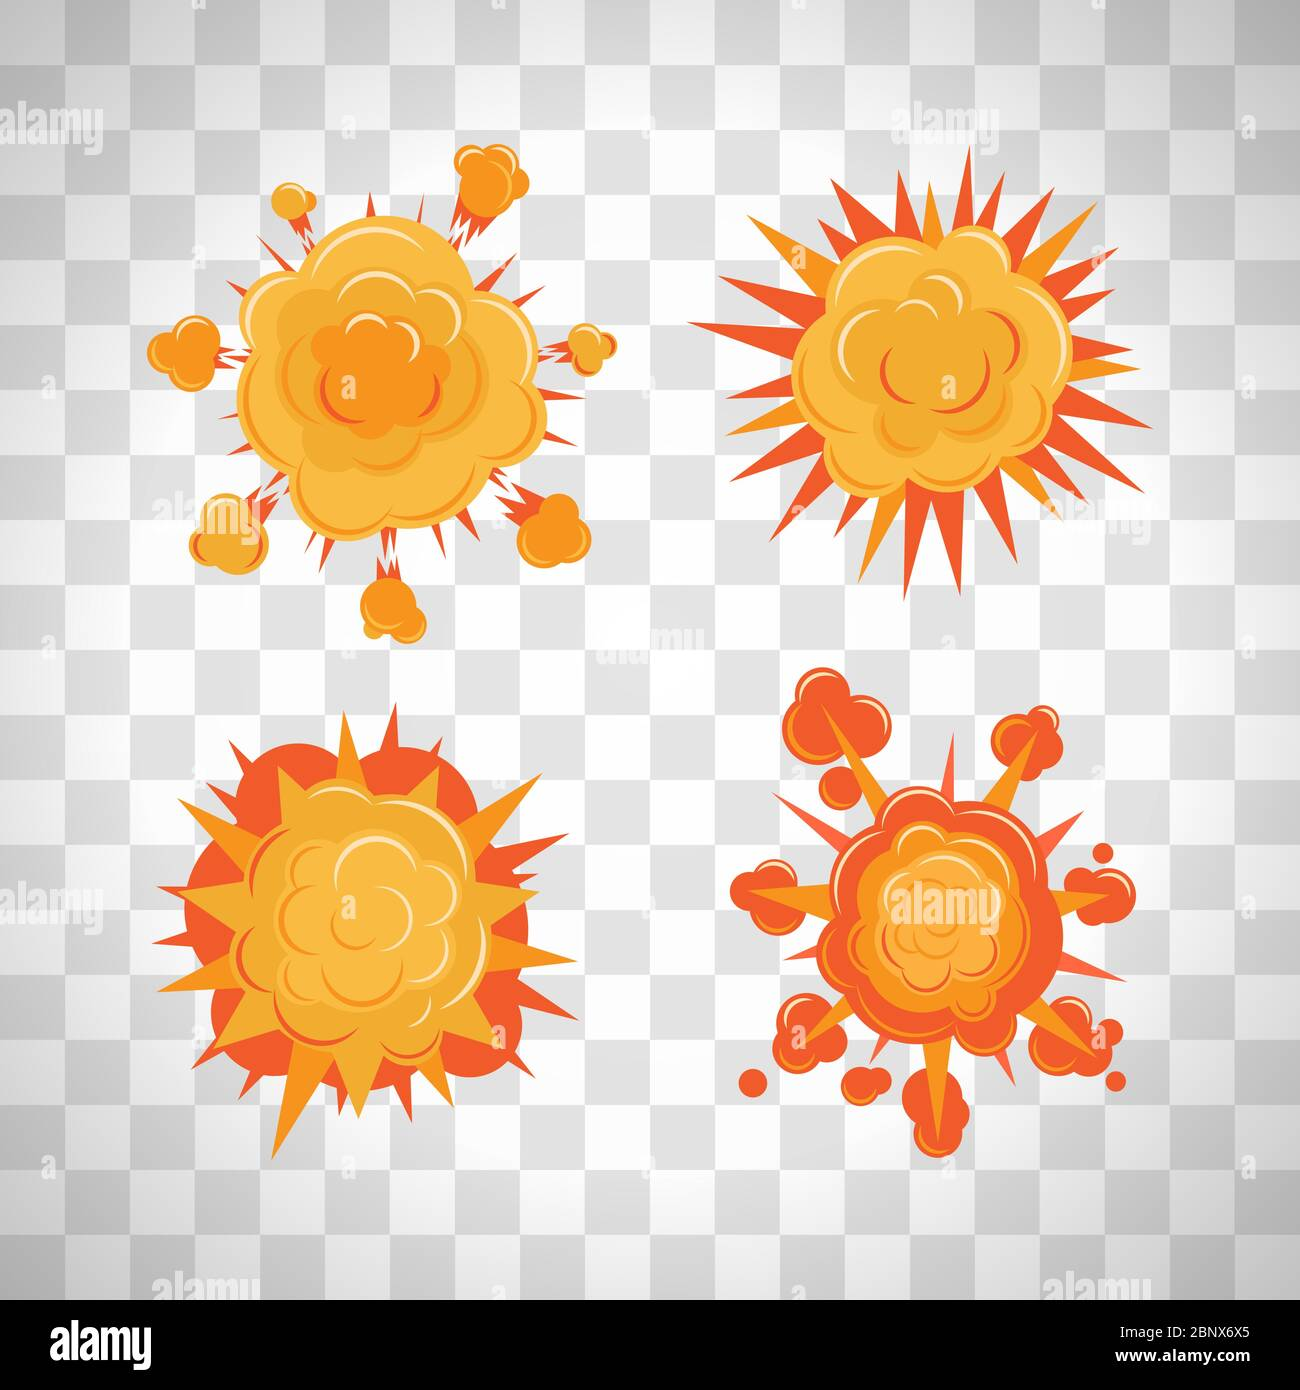 cartoon comic burst or explosion set bang or bomb blast vector fire splash set on the transparent background stock vector image art alamy https www alamy com cartoon comic burst or explosion set bang or bomb blast vector fire splash set on the transparent background image357691325 html